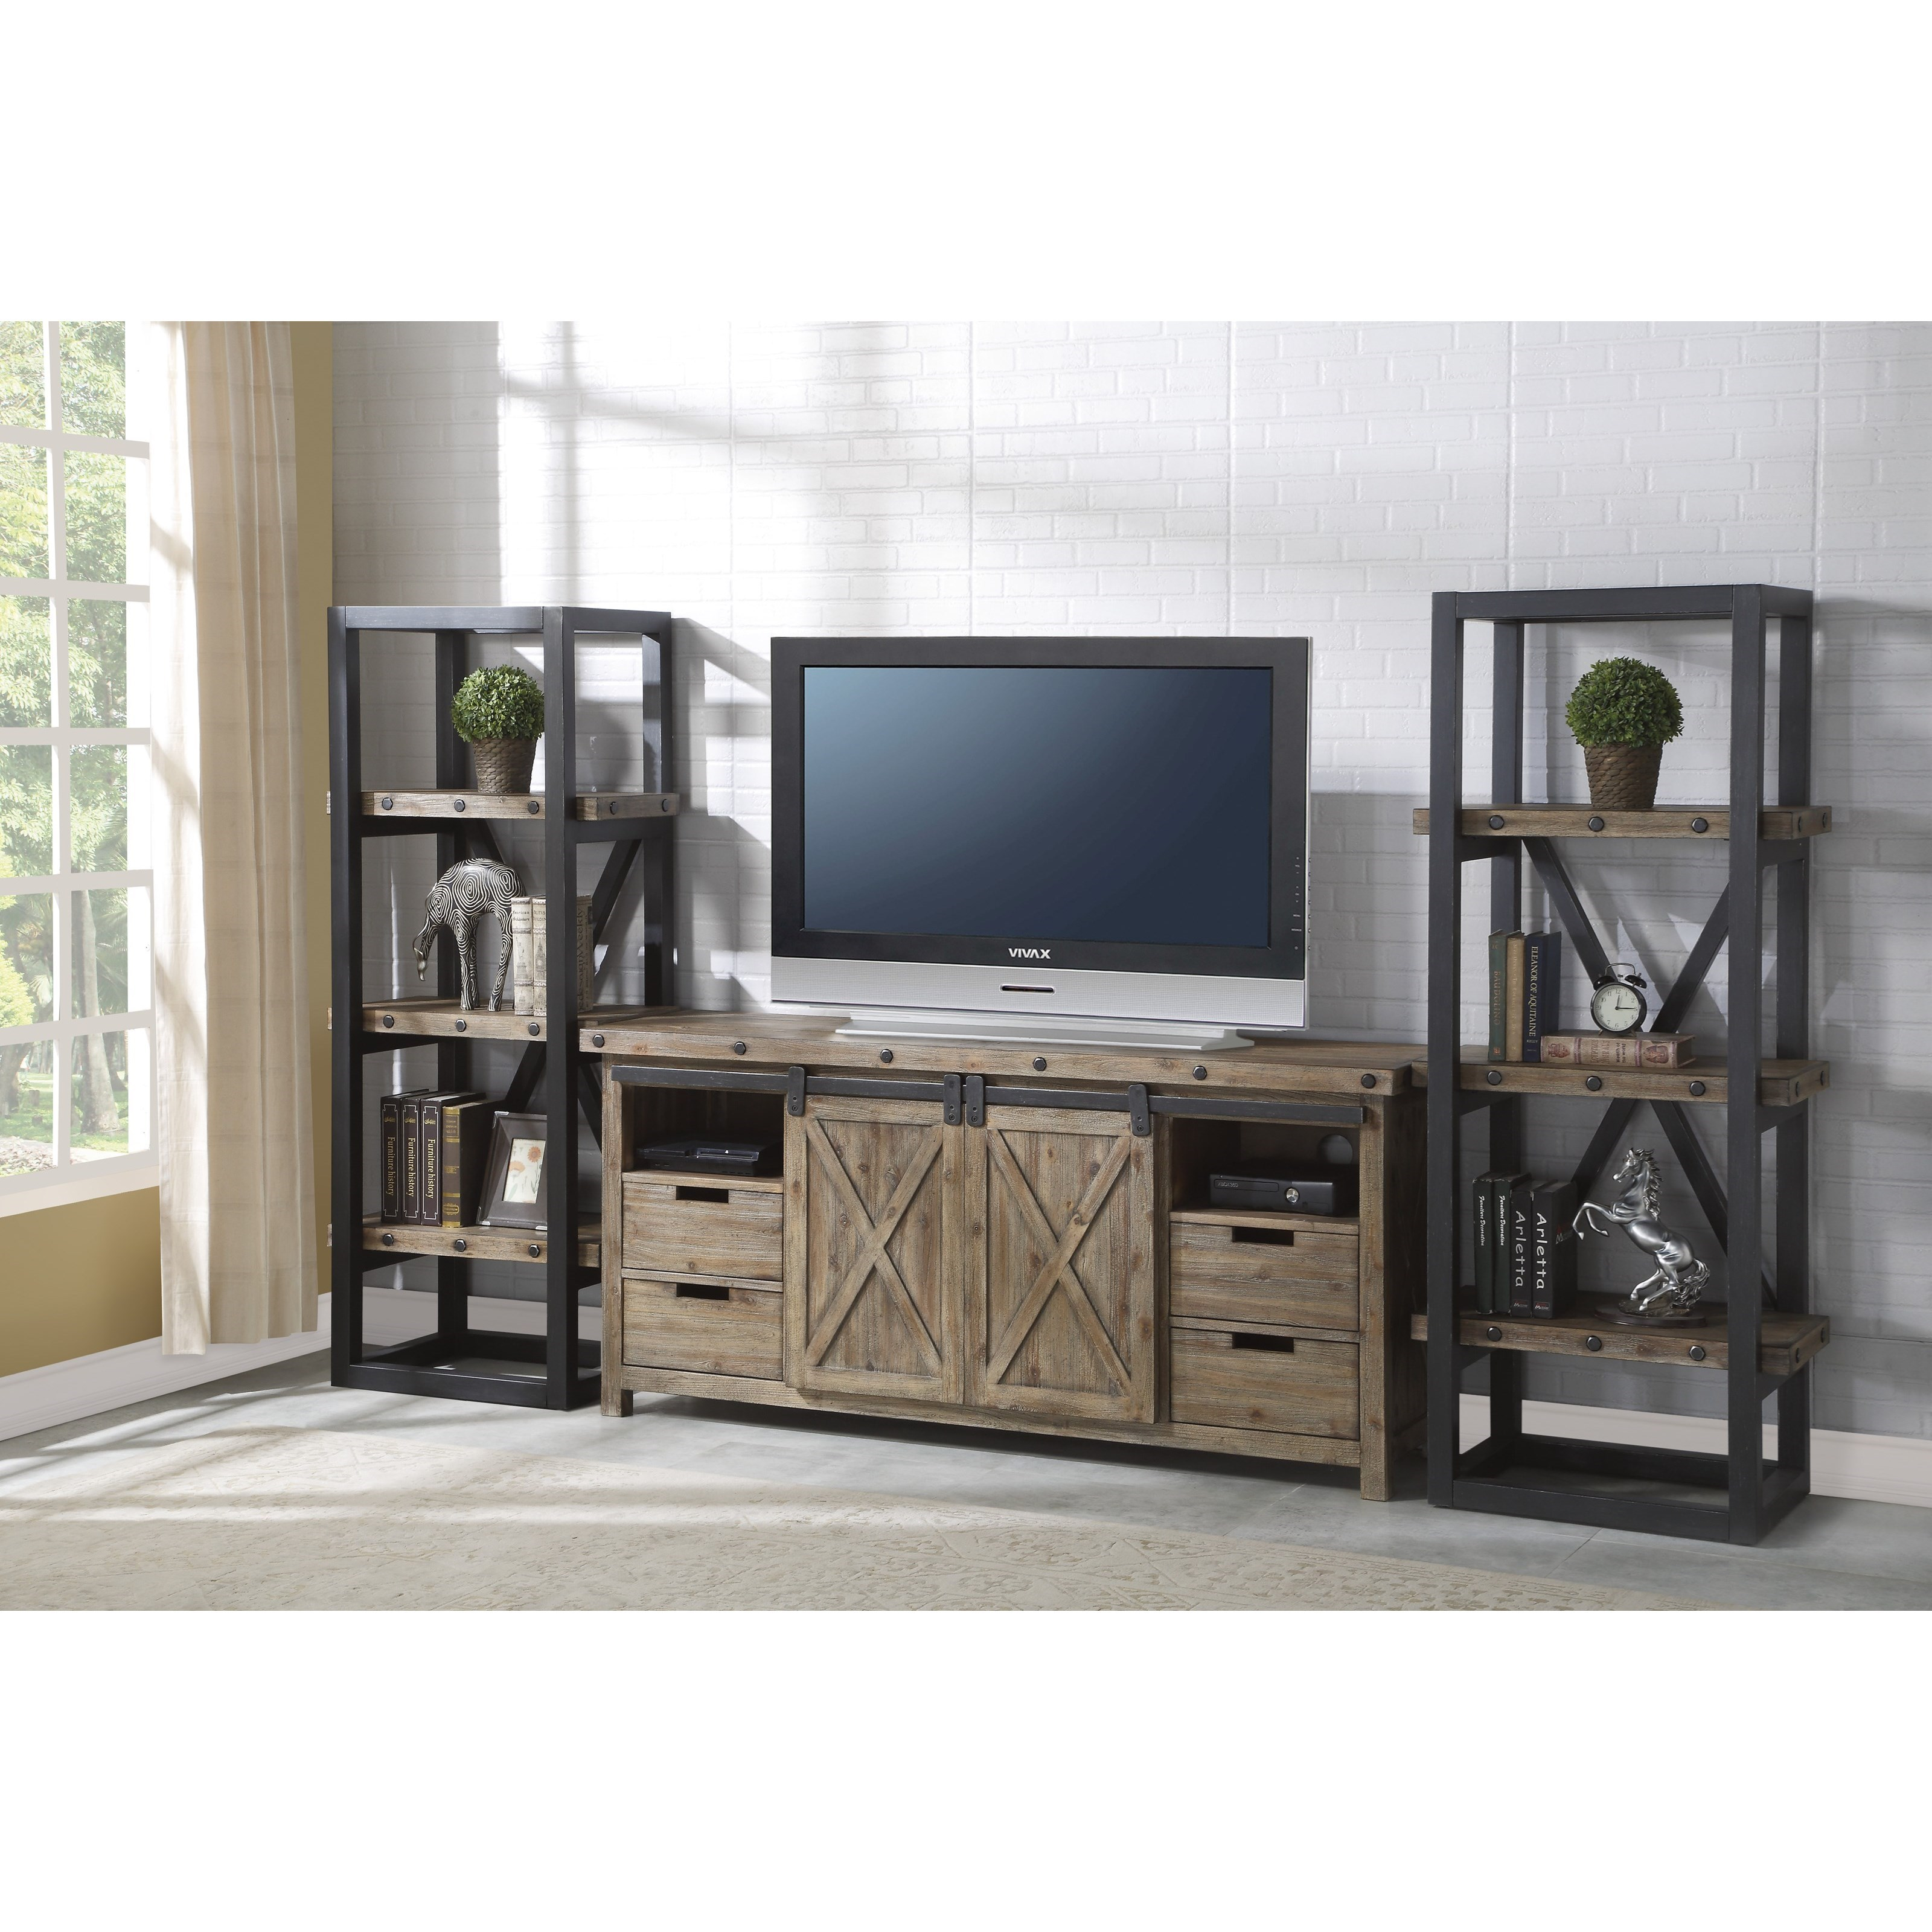 Carpenter Entertainment Set by Flexsteel Wynwood Collection at Pilgrim Furniture City